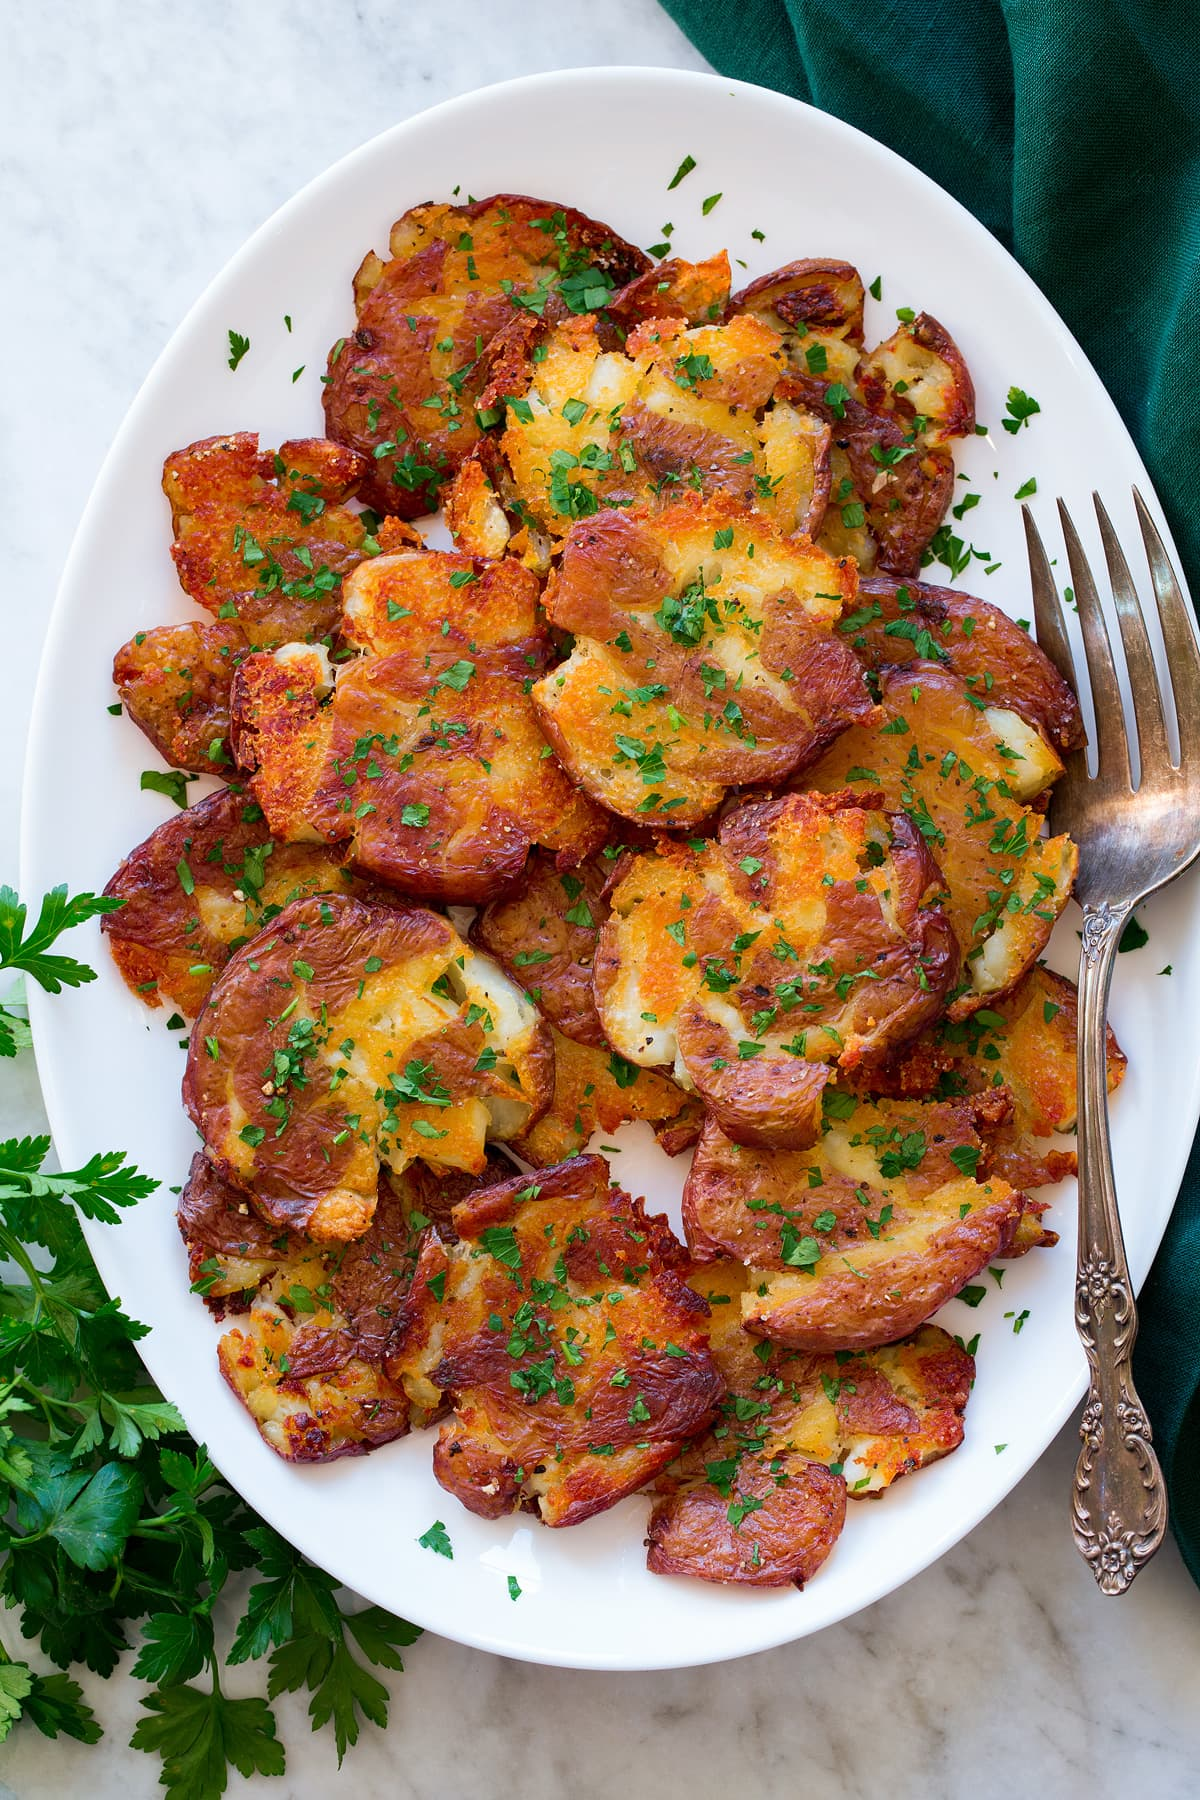 Smashed red potatoes shown piled on a white oval platter. They are shown from above on a white marble surface with a green cloth and parsley to the sides.